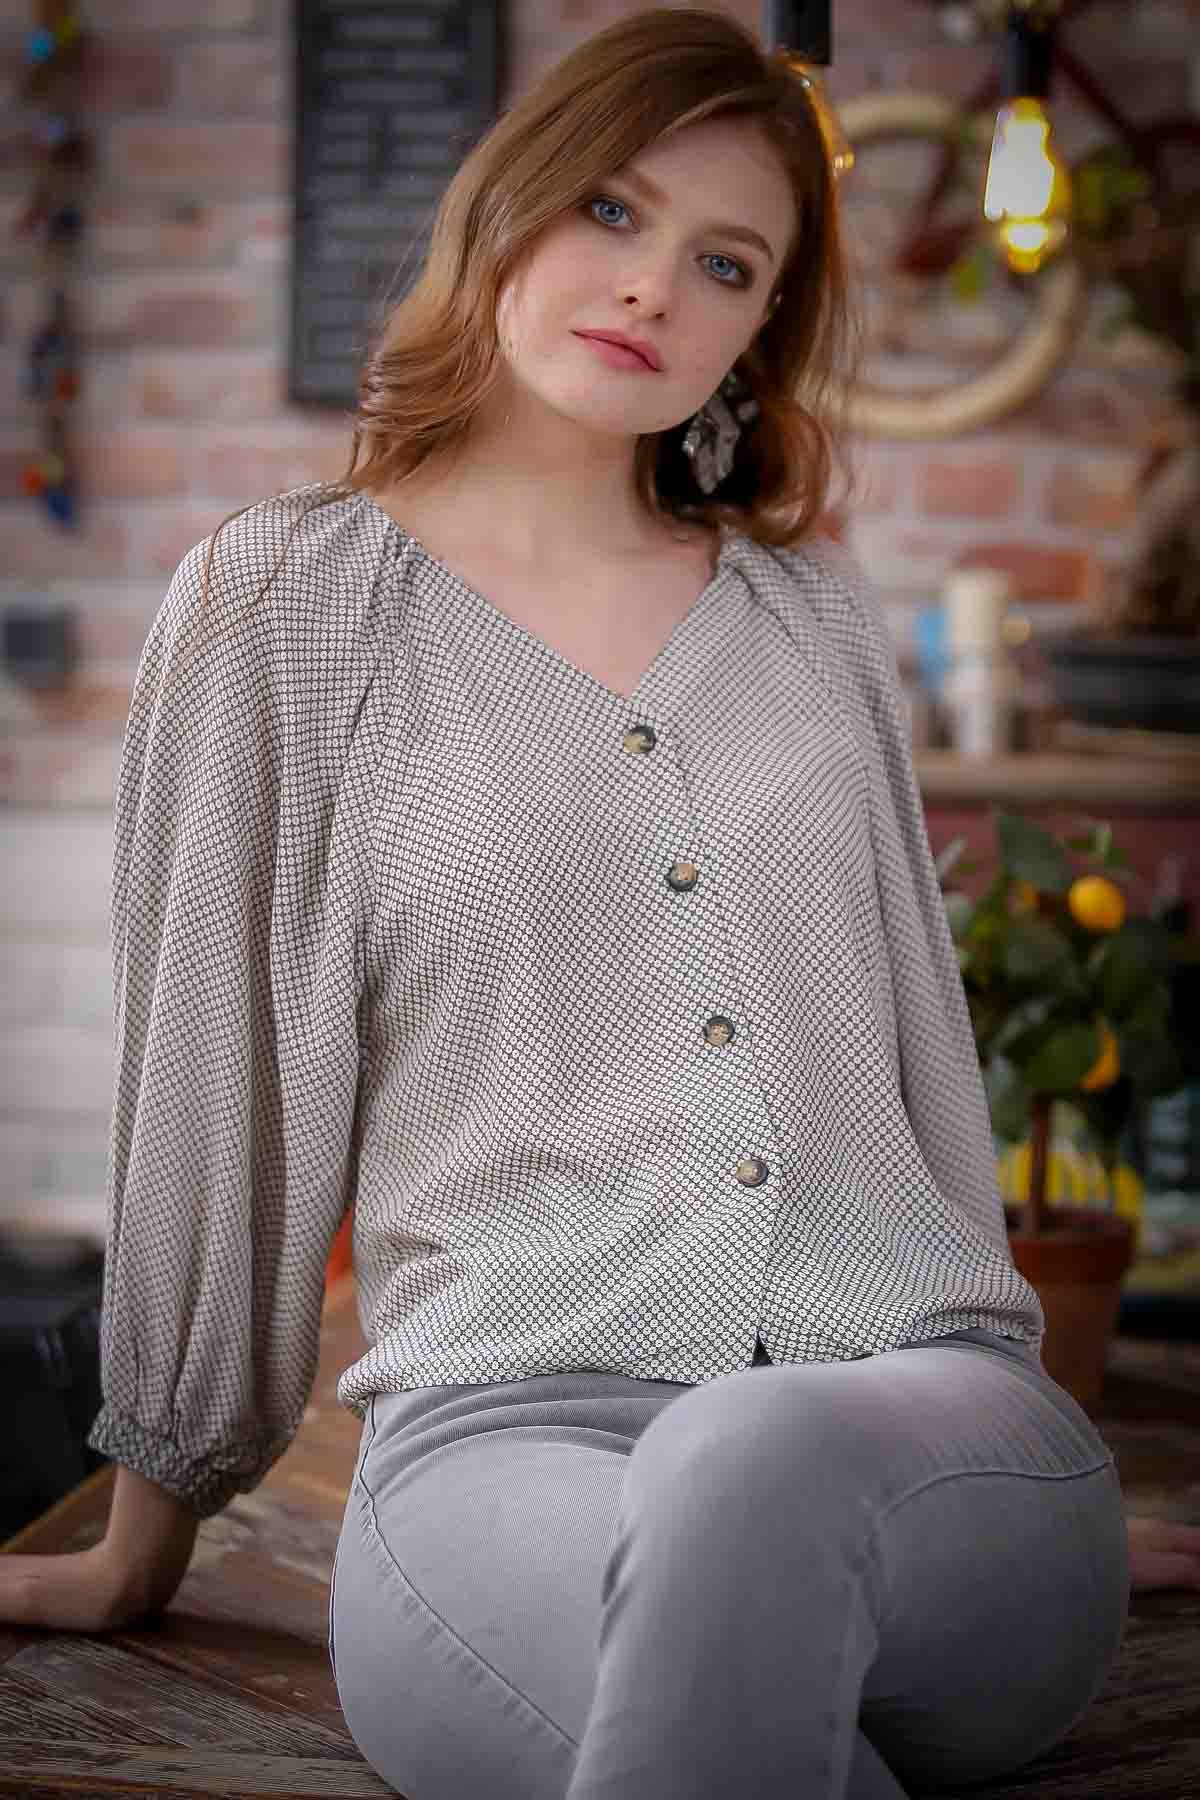 Retro detailed buttoned blouse ruffles at the shoulders and arms